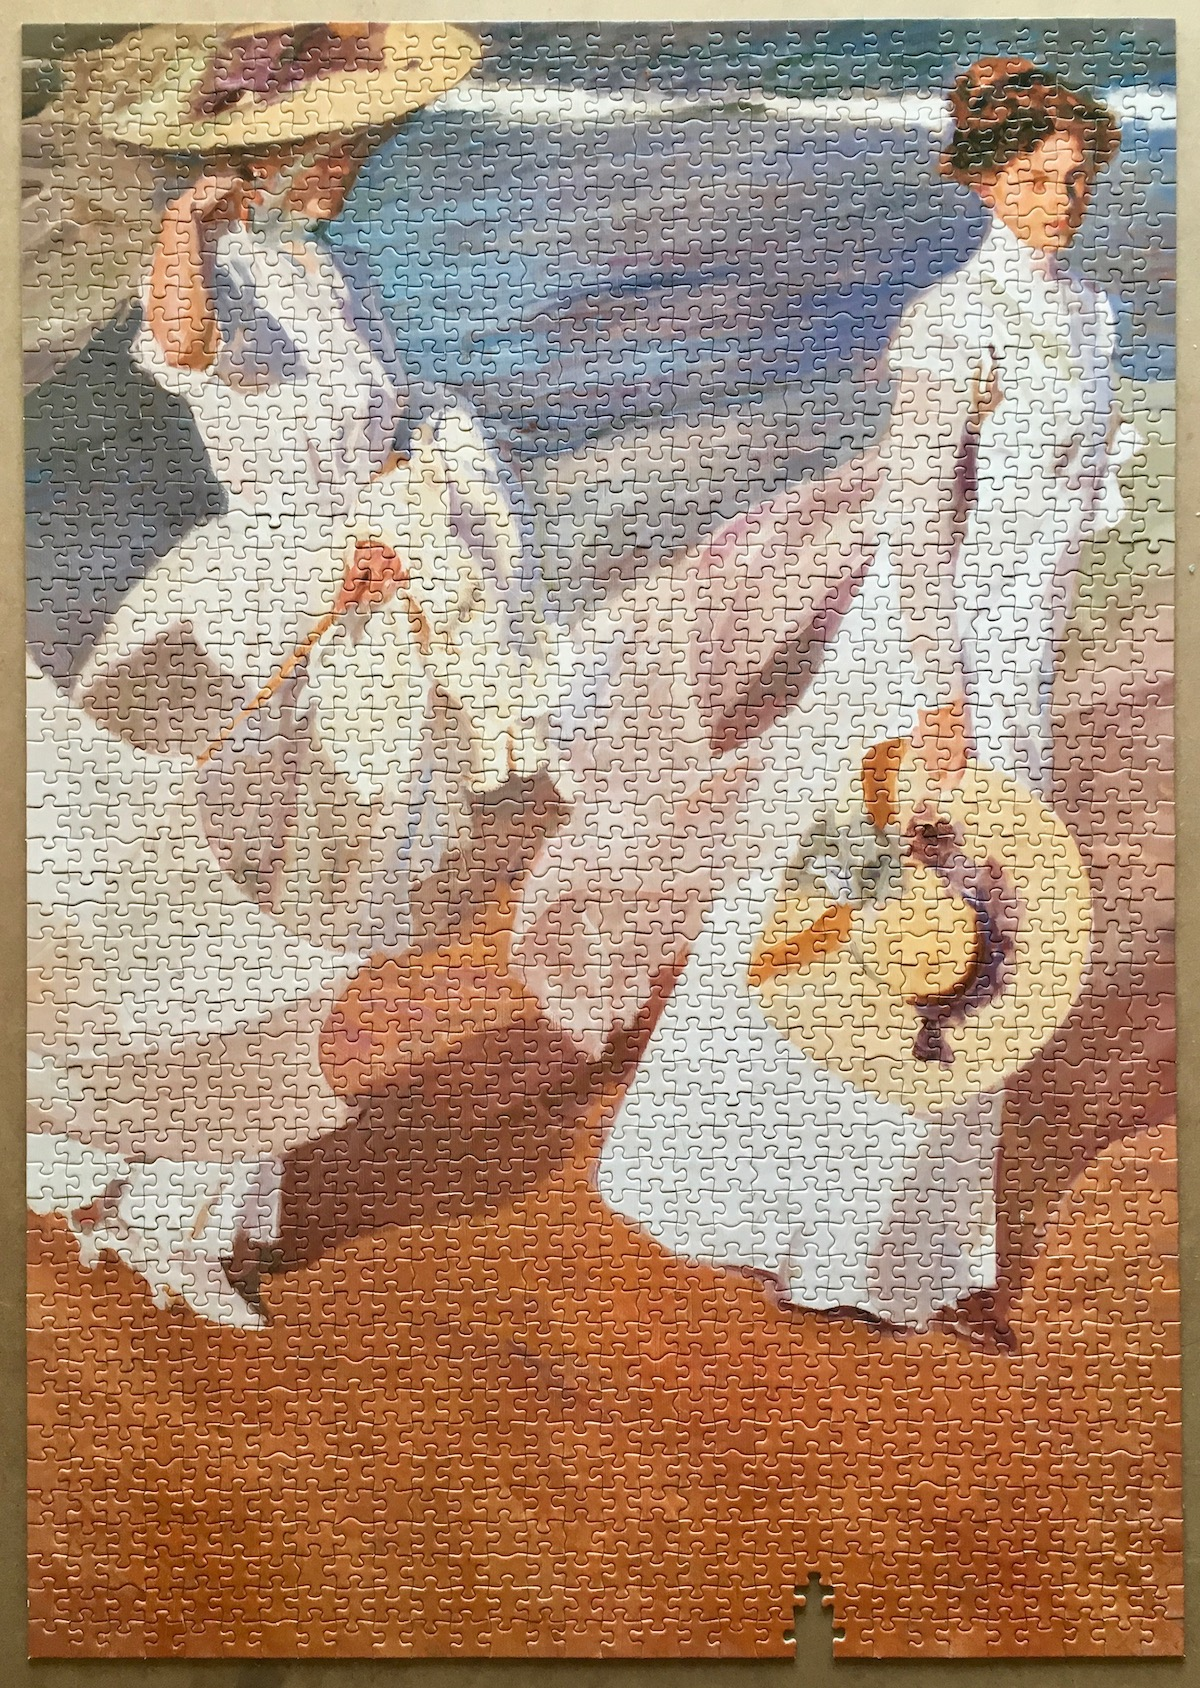 Image of the puzzle 1500, Educa, Walk on the Beach, by Joaquín Sorolla, Picture of the puzzle assembled